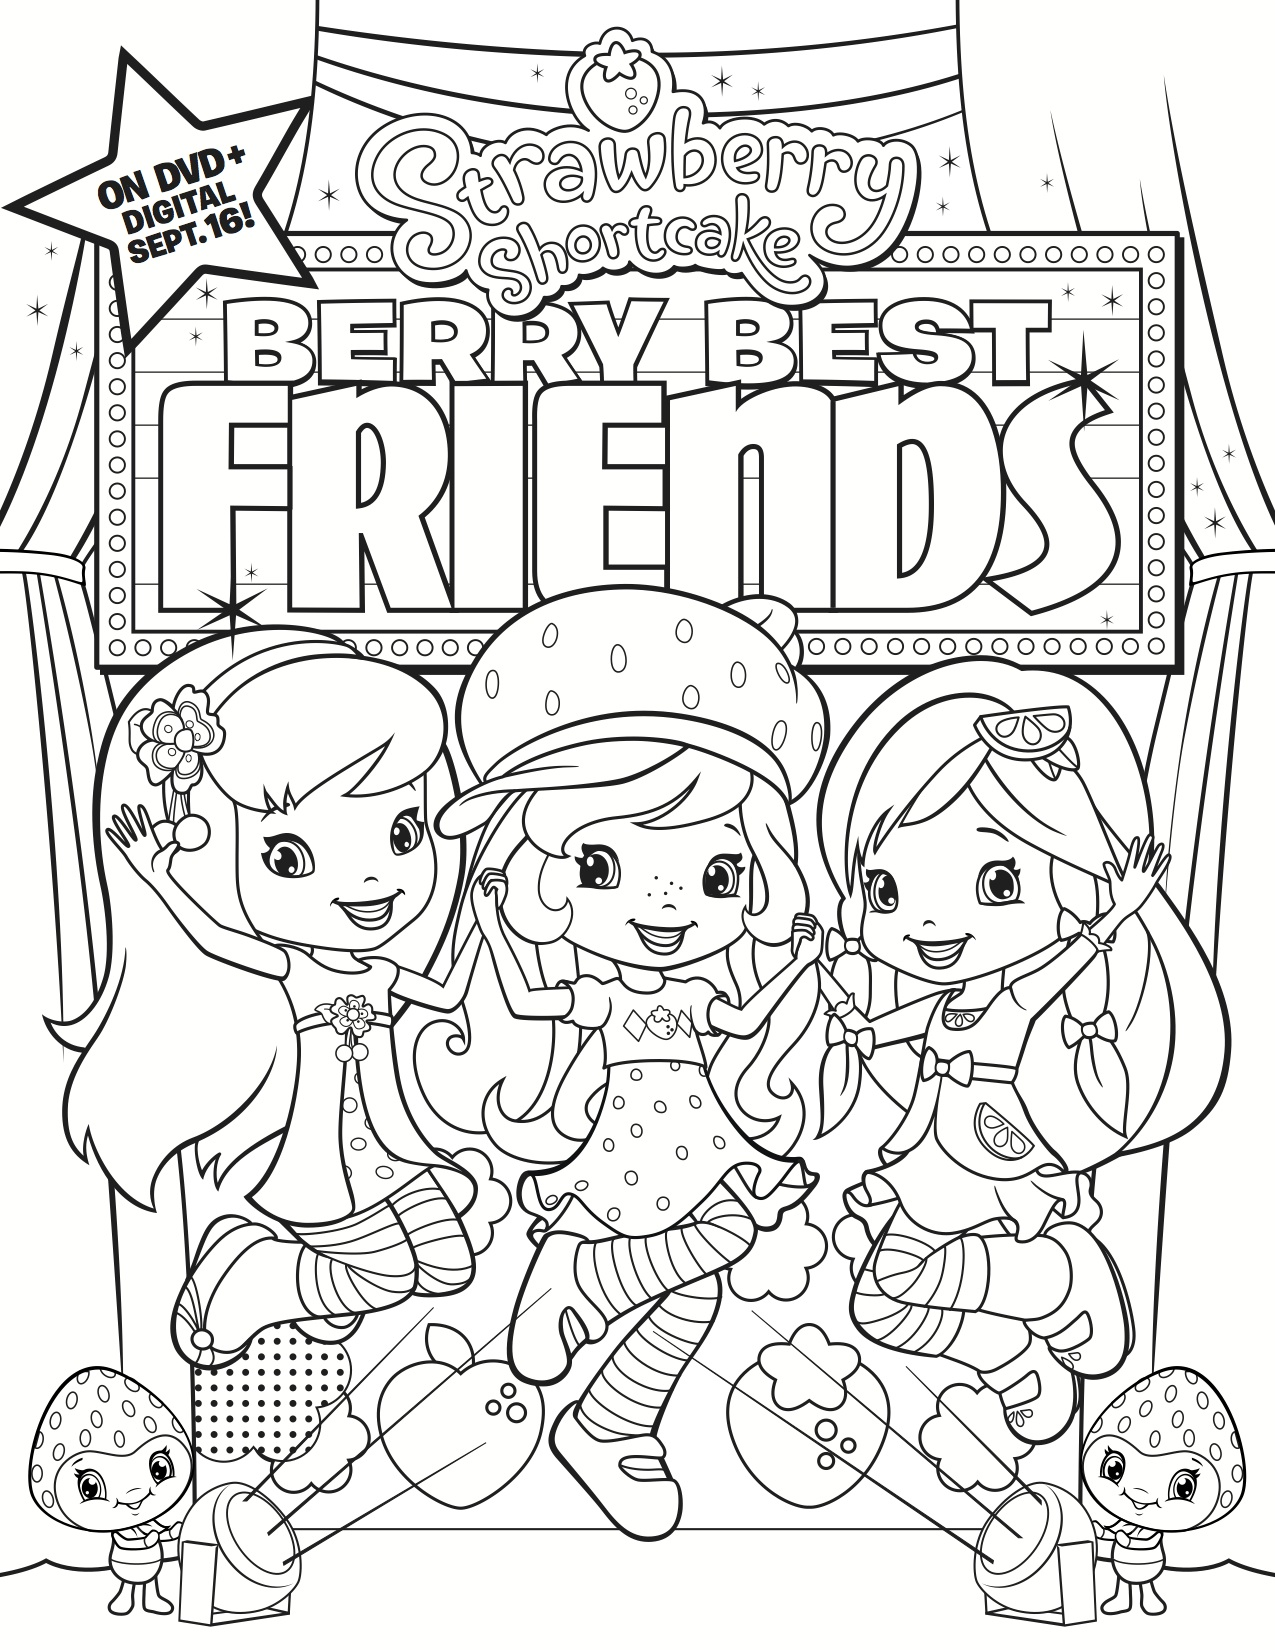 coloring pictures of strawberry shortcake best friends